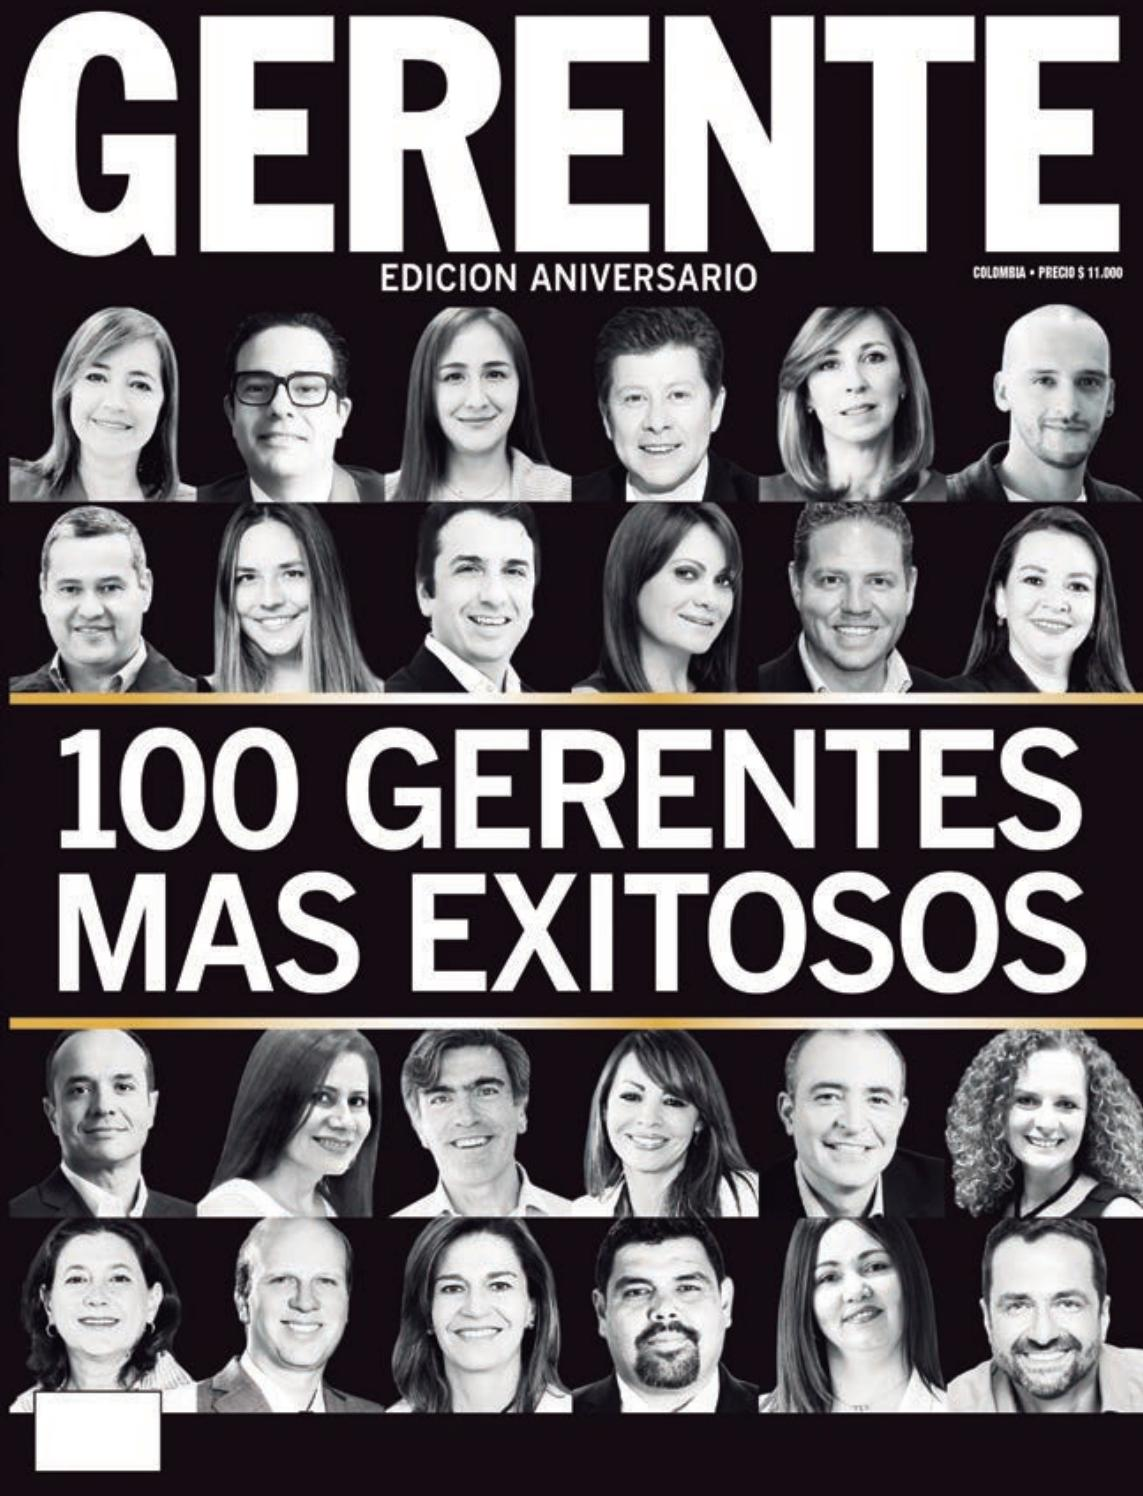 Revista Gerente Colombia 229 by REVISTA GERENTE - issuu